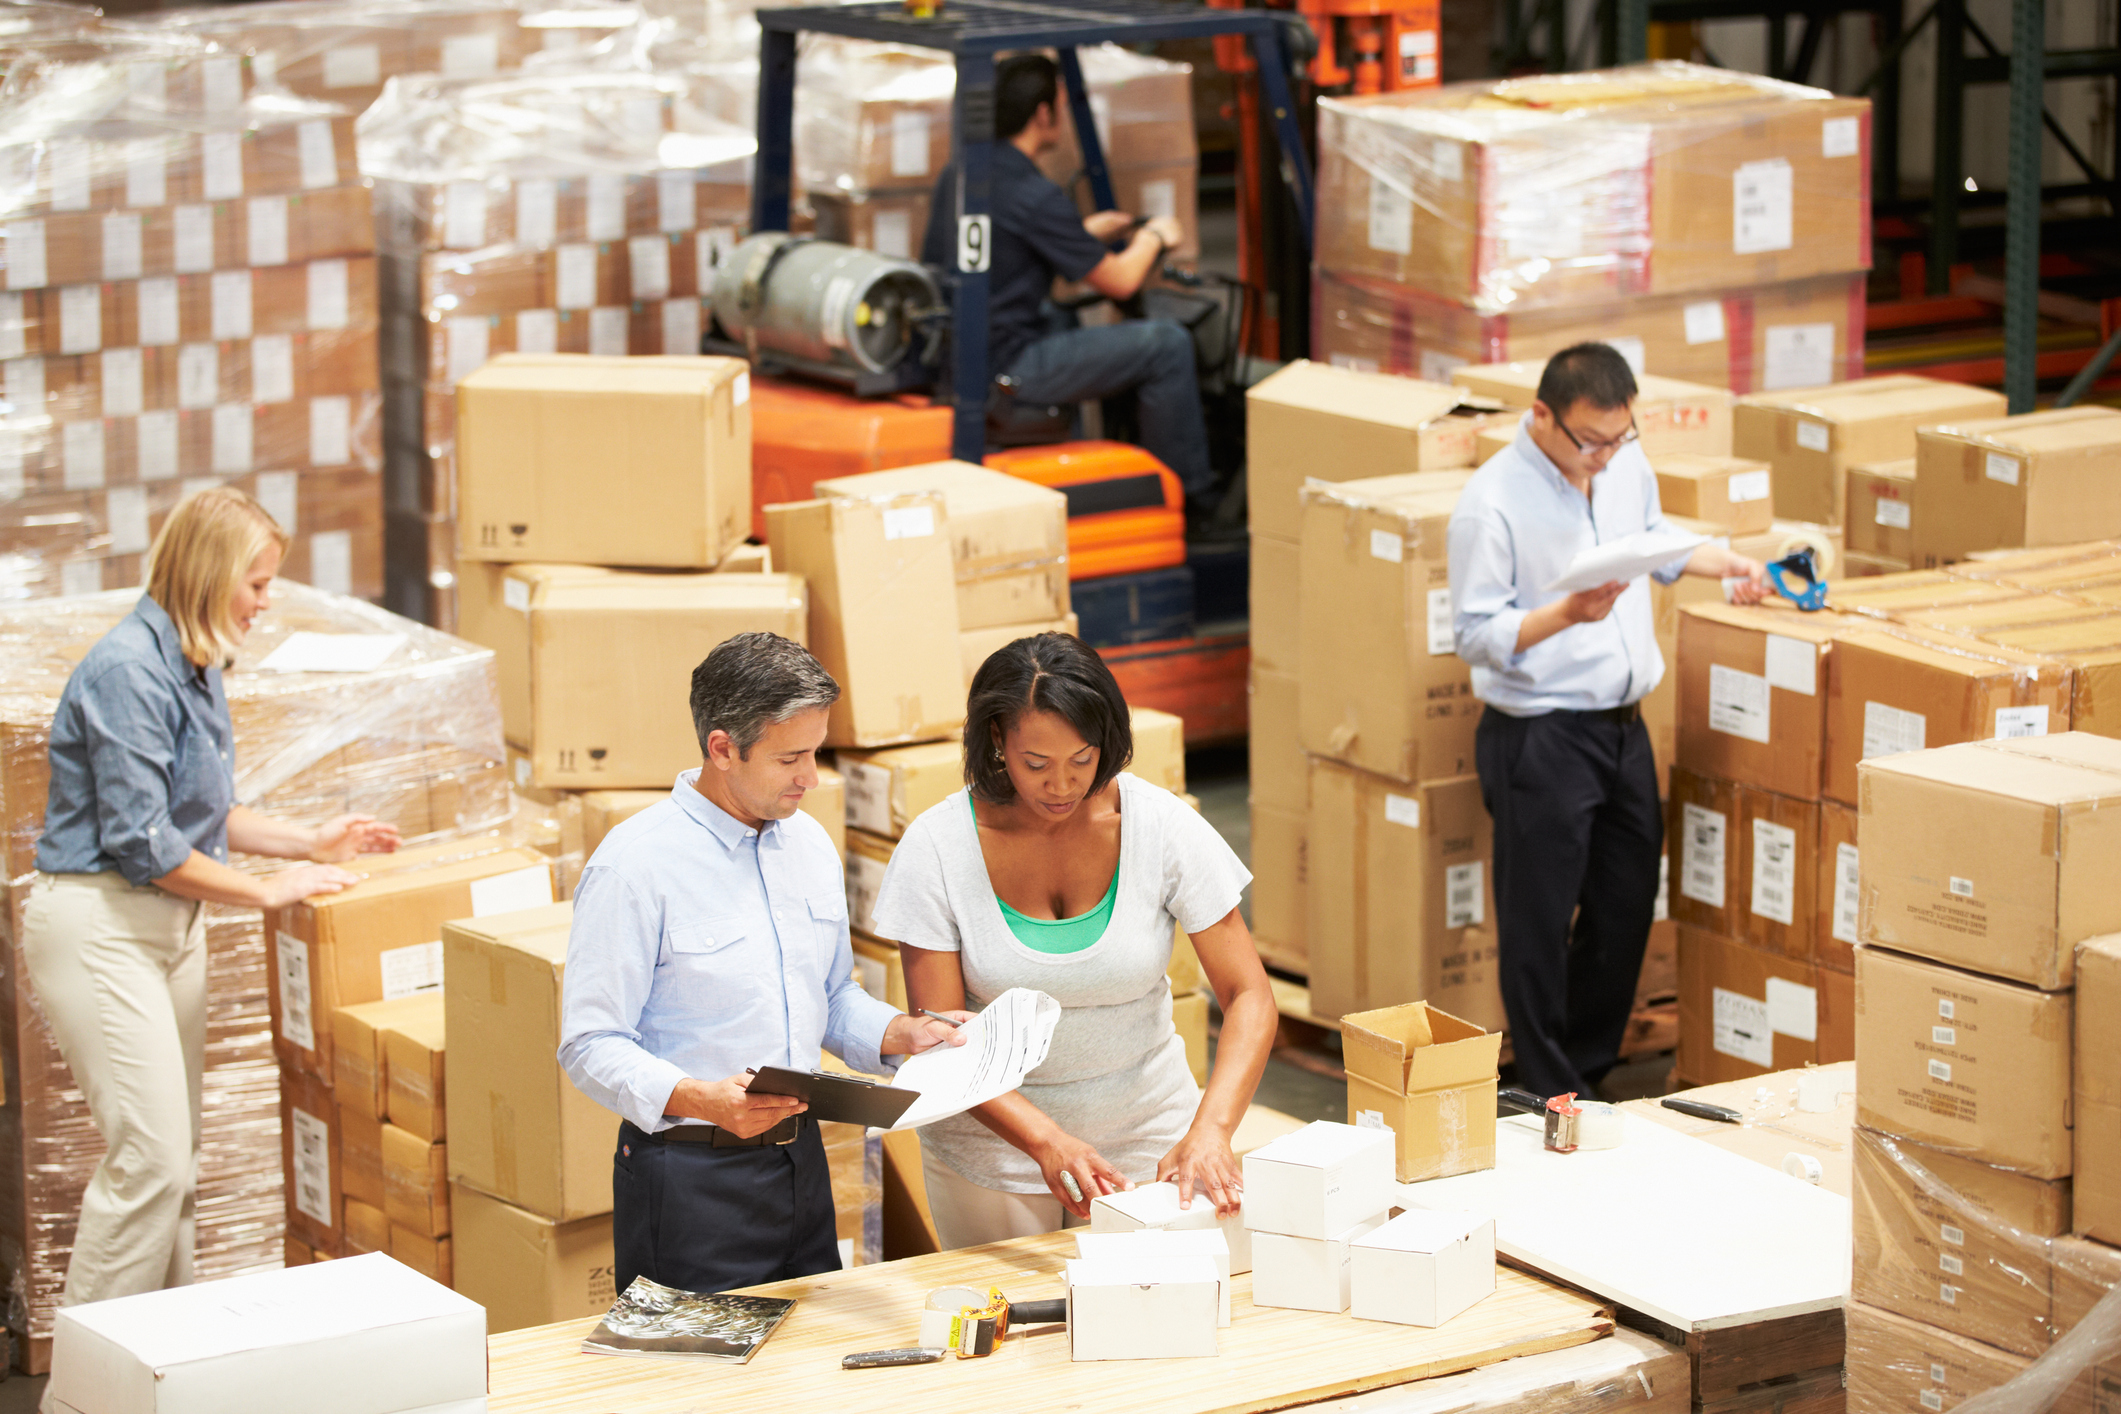 Shipping - Our technology enables us to ship any quantity of packages in a given time period. Whether it's twenty boxes or twenty thousand, our distribution center will work to get your products to the customer in the least amount of time. Our multiple quality checks ensure that your orders are fulfilled accurately, and that your customers will be satisfied. We pride ourselves on our accuracy, and we strive to maintain our impressive accuracy rate. Also, we will ensure that 100% of in-stock items ship the same day or next. With this quick turnaround on shipping your products, we have a 99.9% accuracy rate on pick and pack orders!